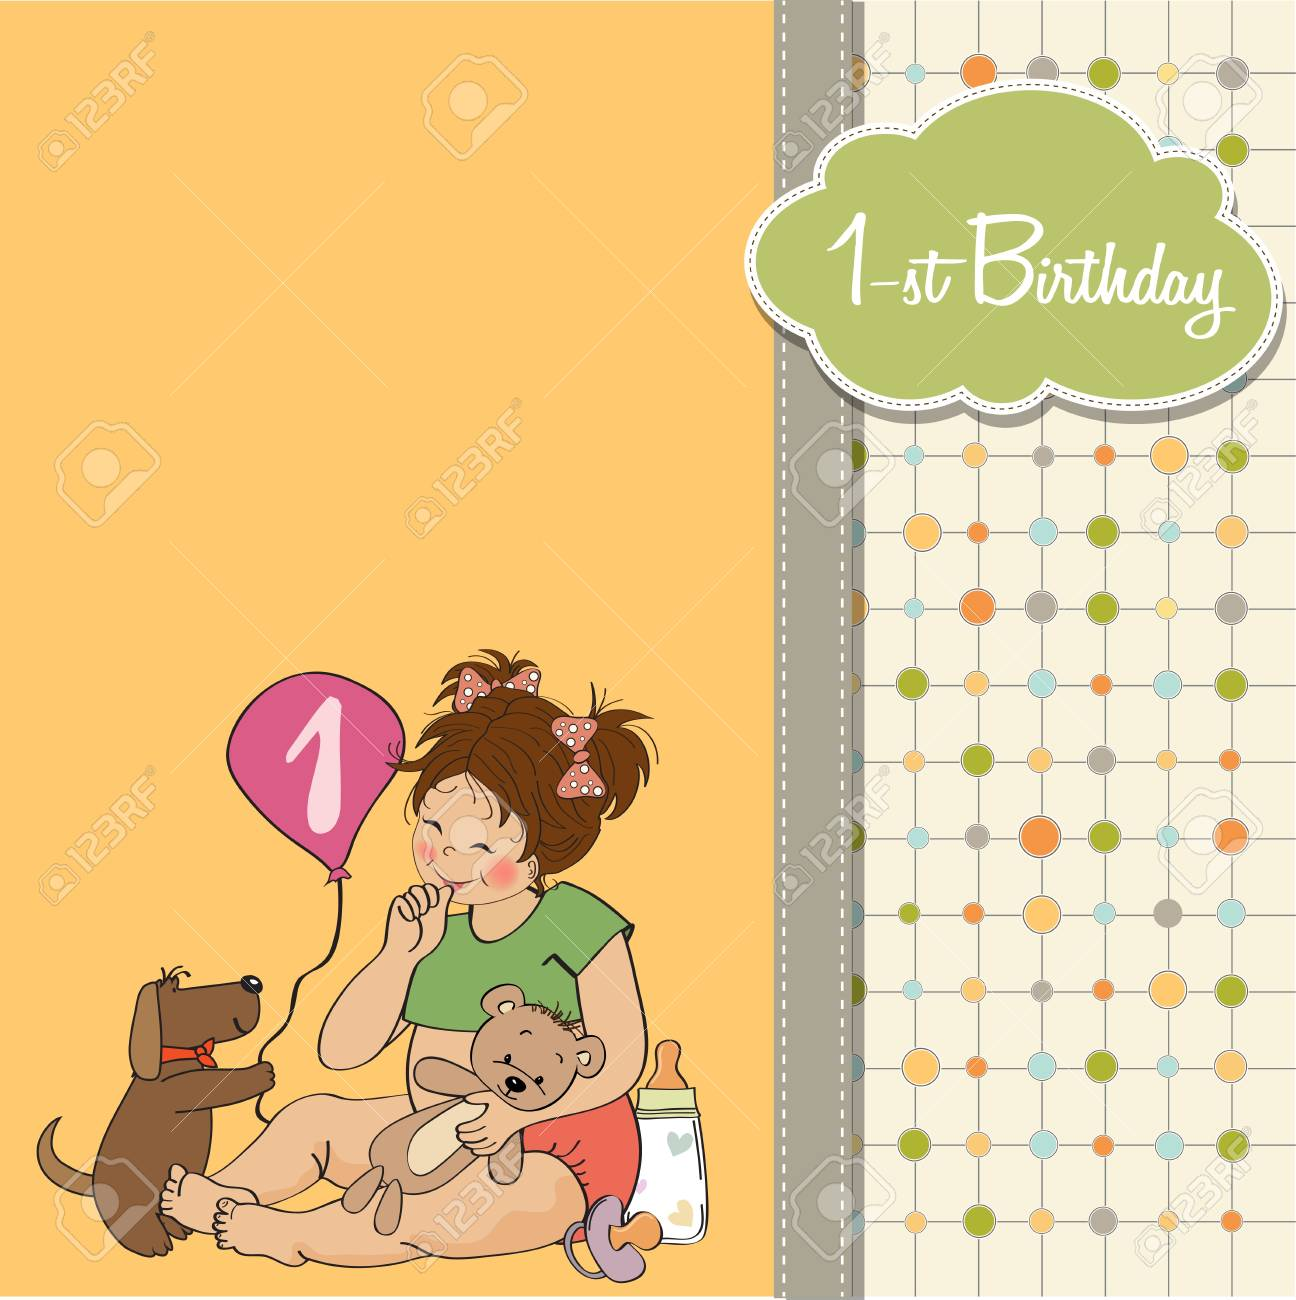 little girl at her first birthday, vector illustration Stock Vector - 18401093